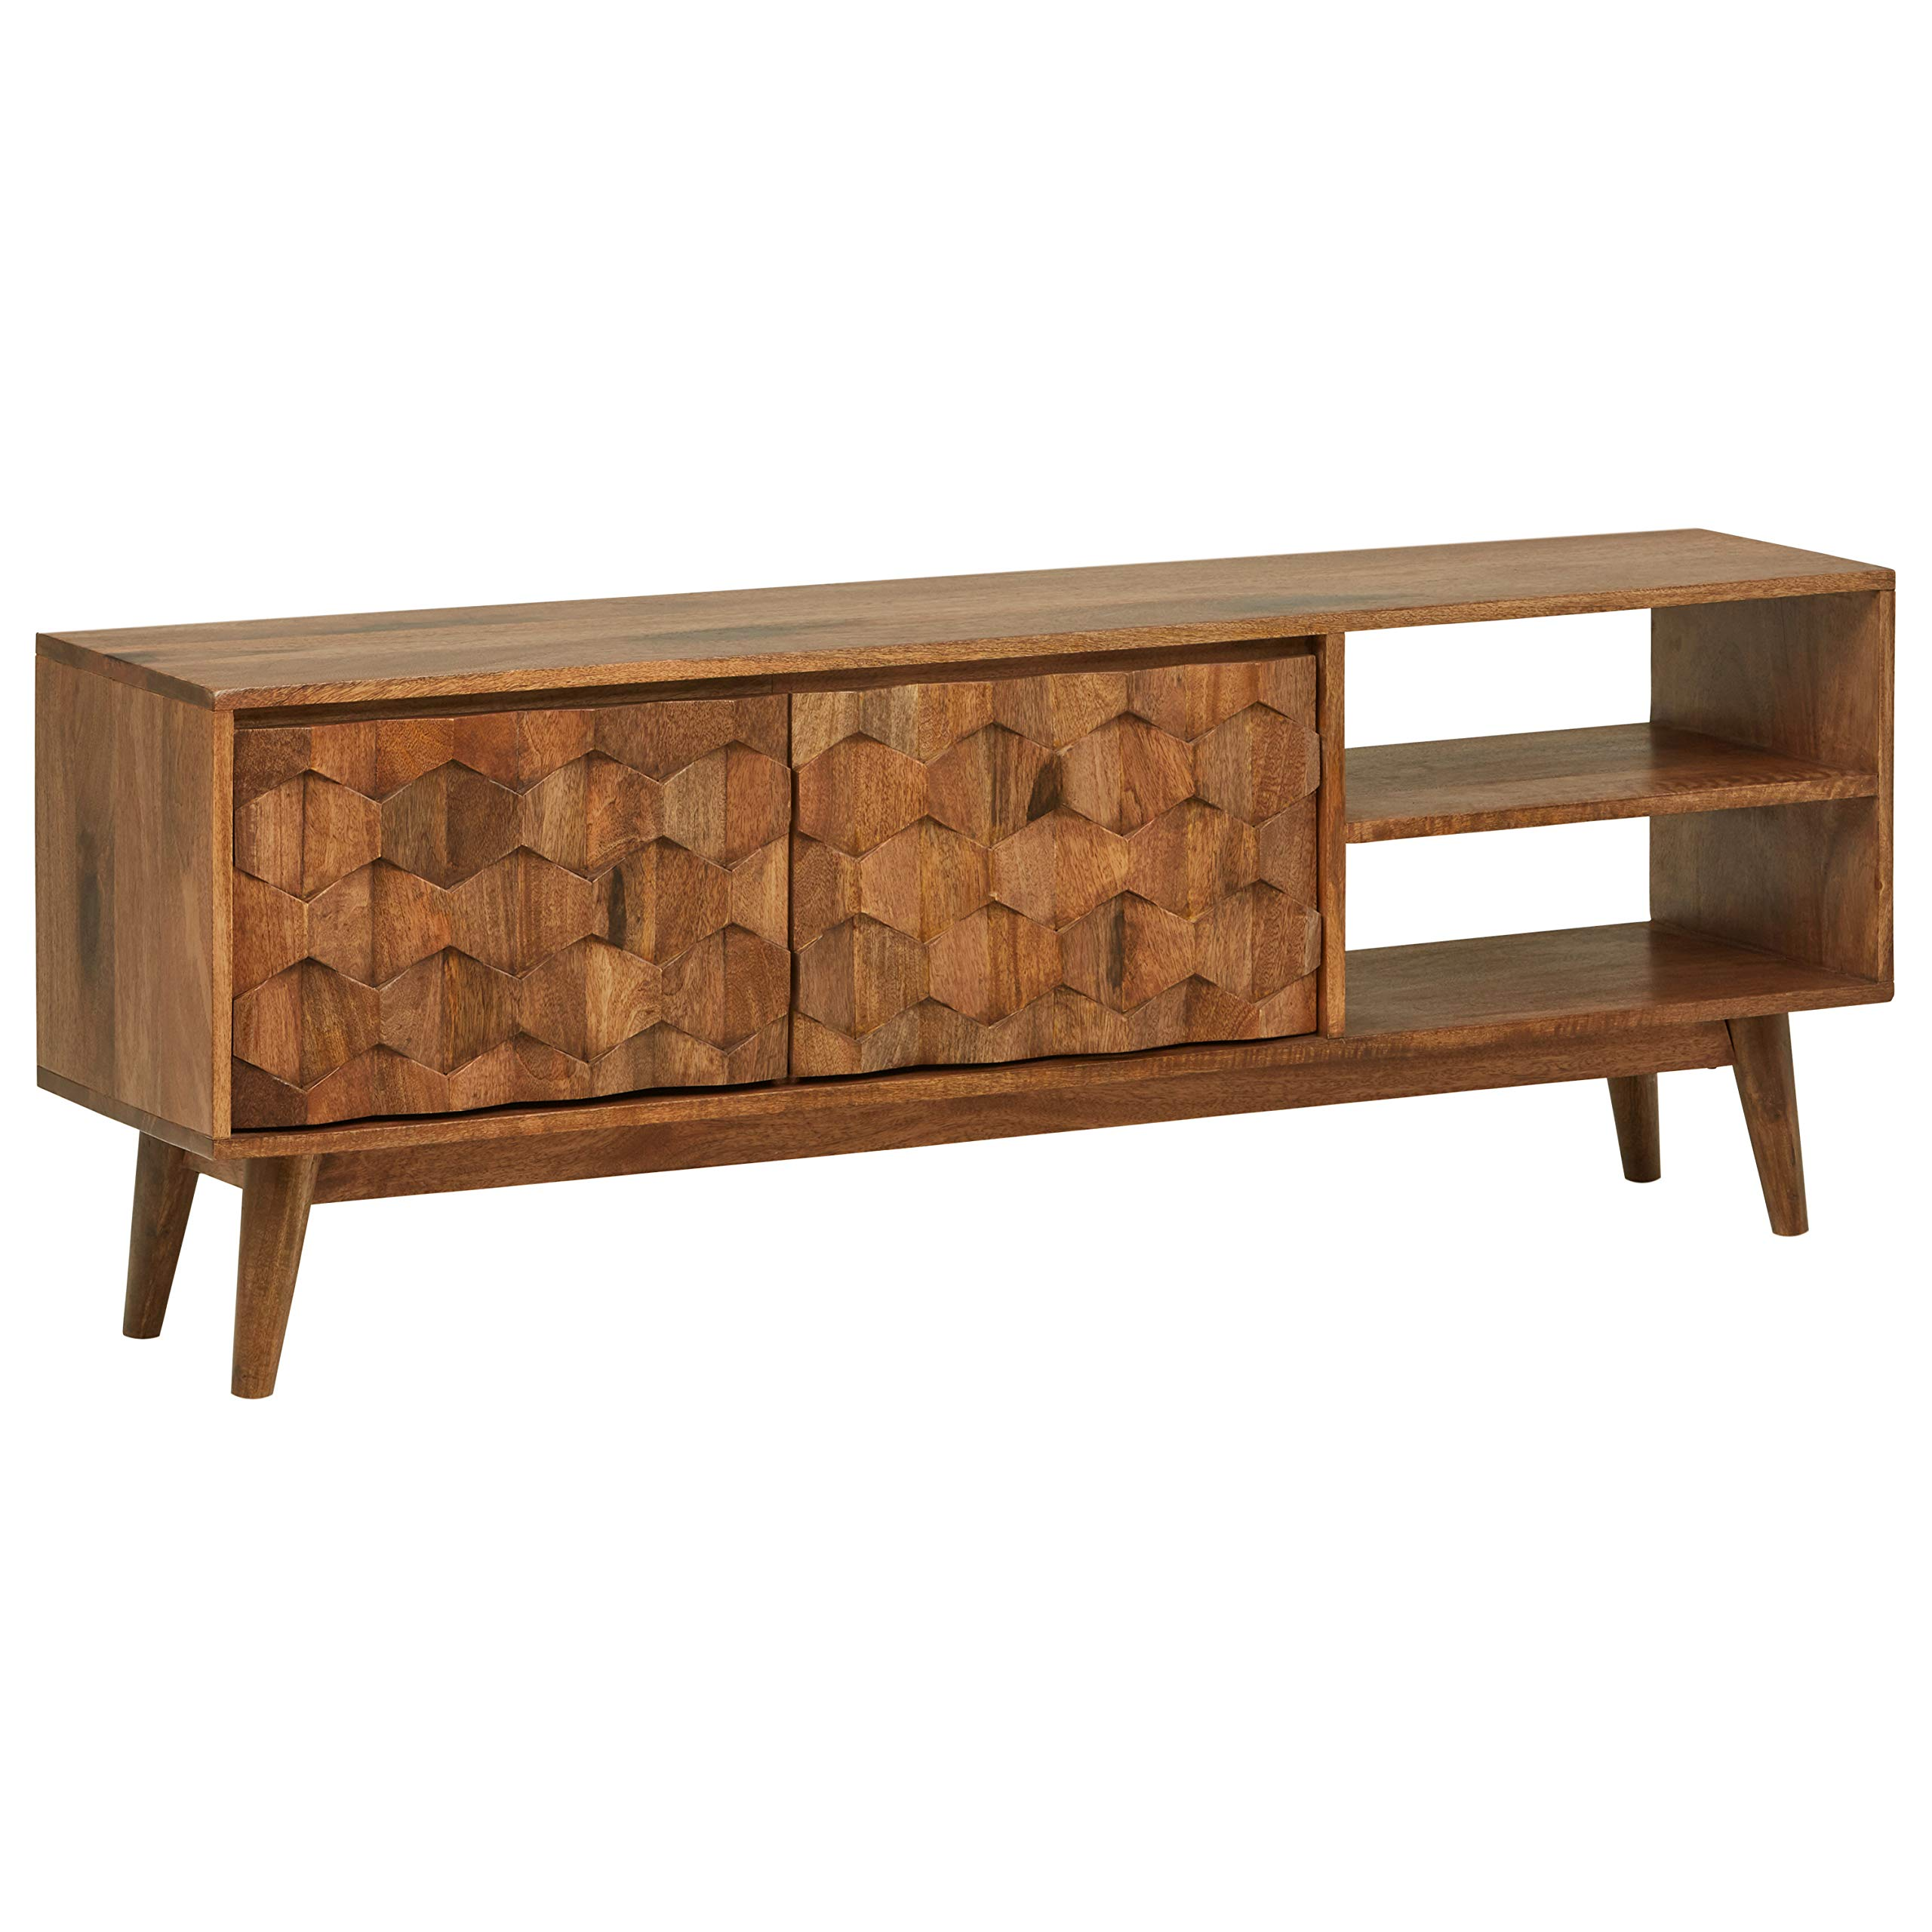 Rivet Emerly Contemporary Media Console Center Storage Cabinet, 57''W, Wood